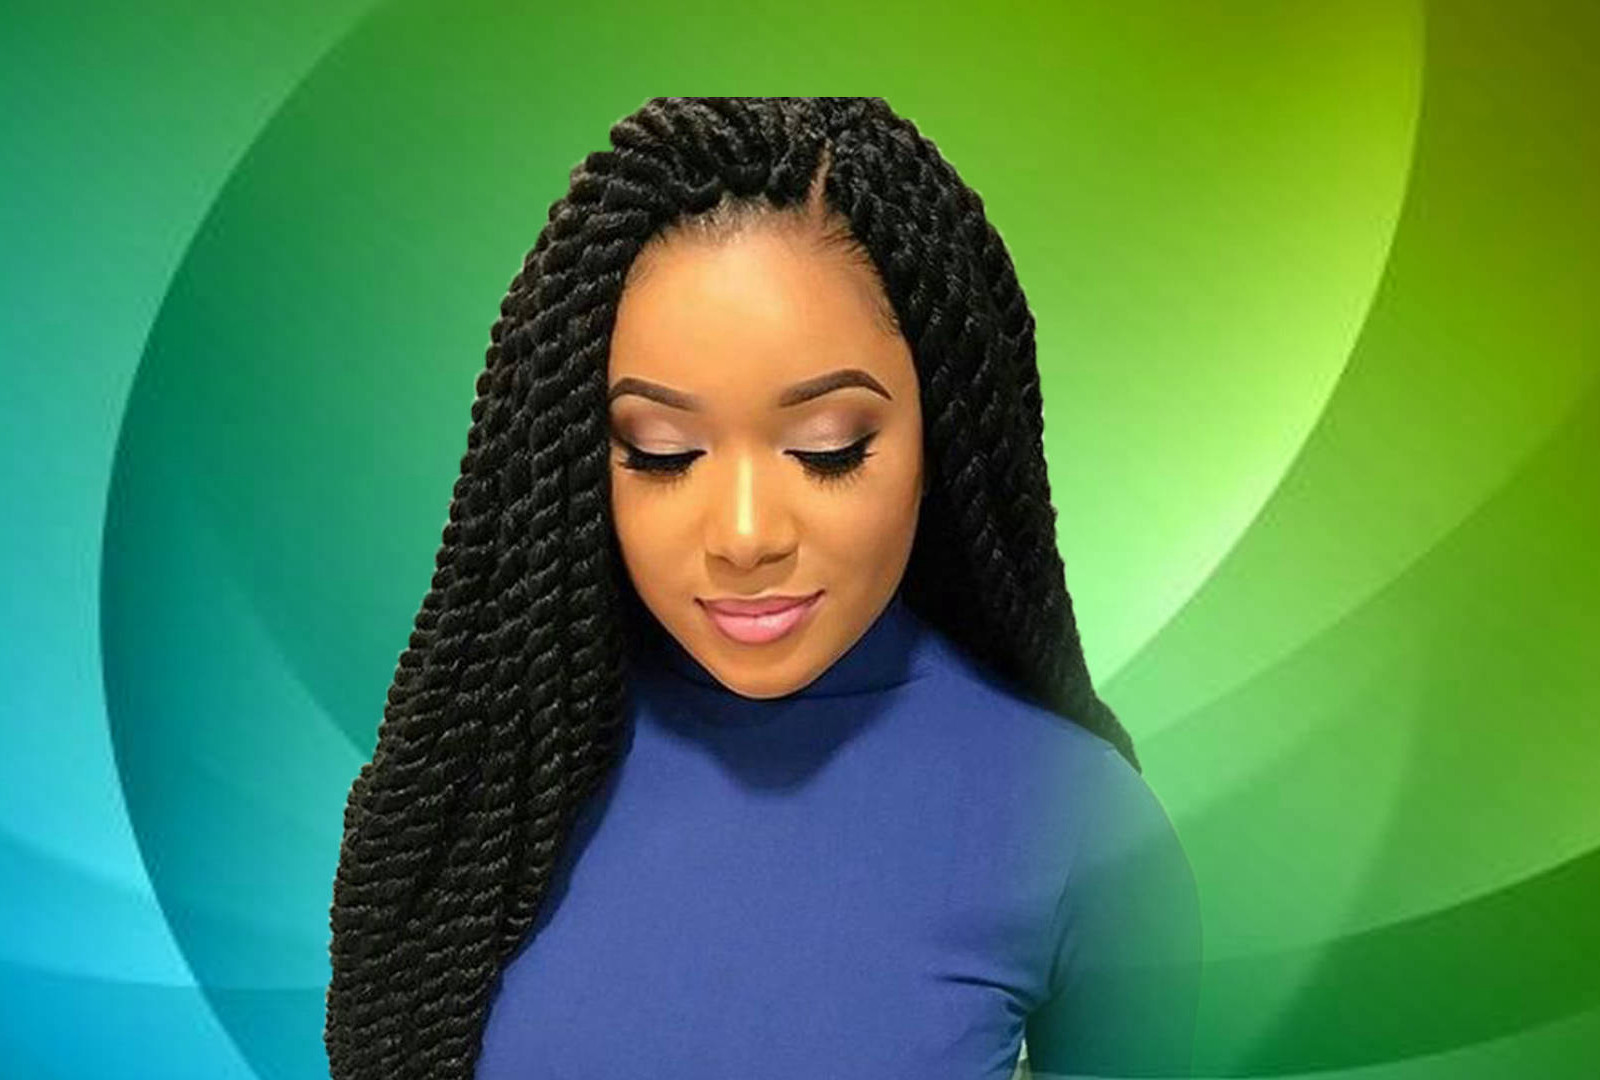 Mouna's African Hair Braiding Denver Colorado braiding salon